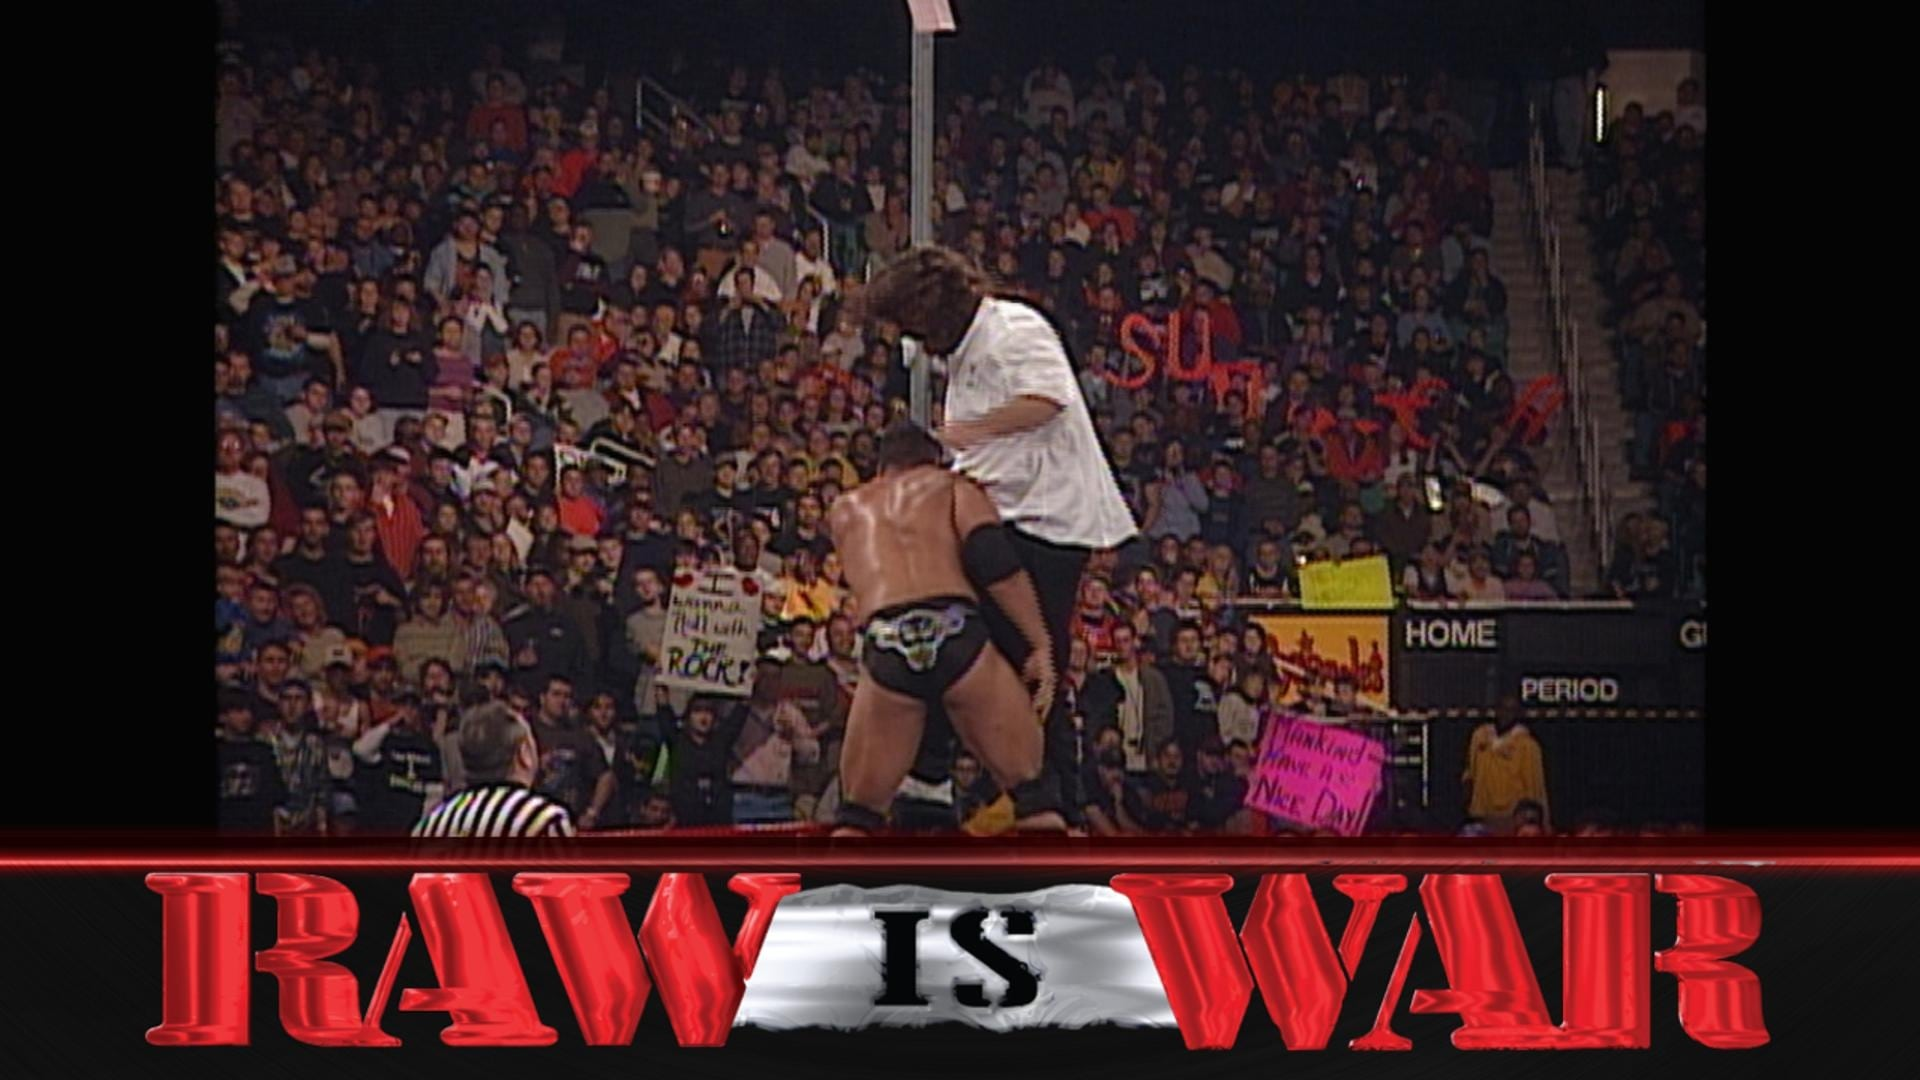 WWE Raw Season 7 :Episode 52  RAW is WAR 344